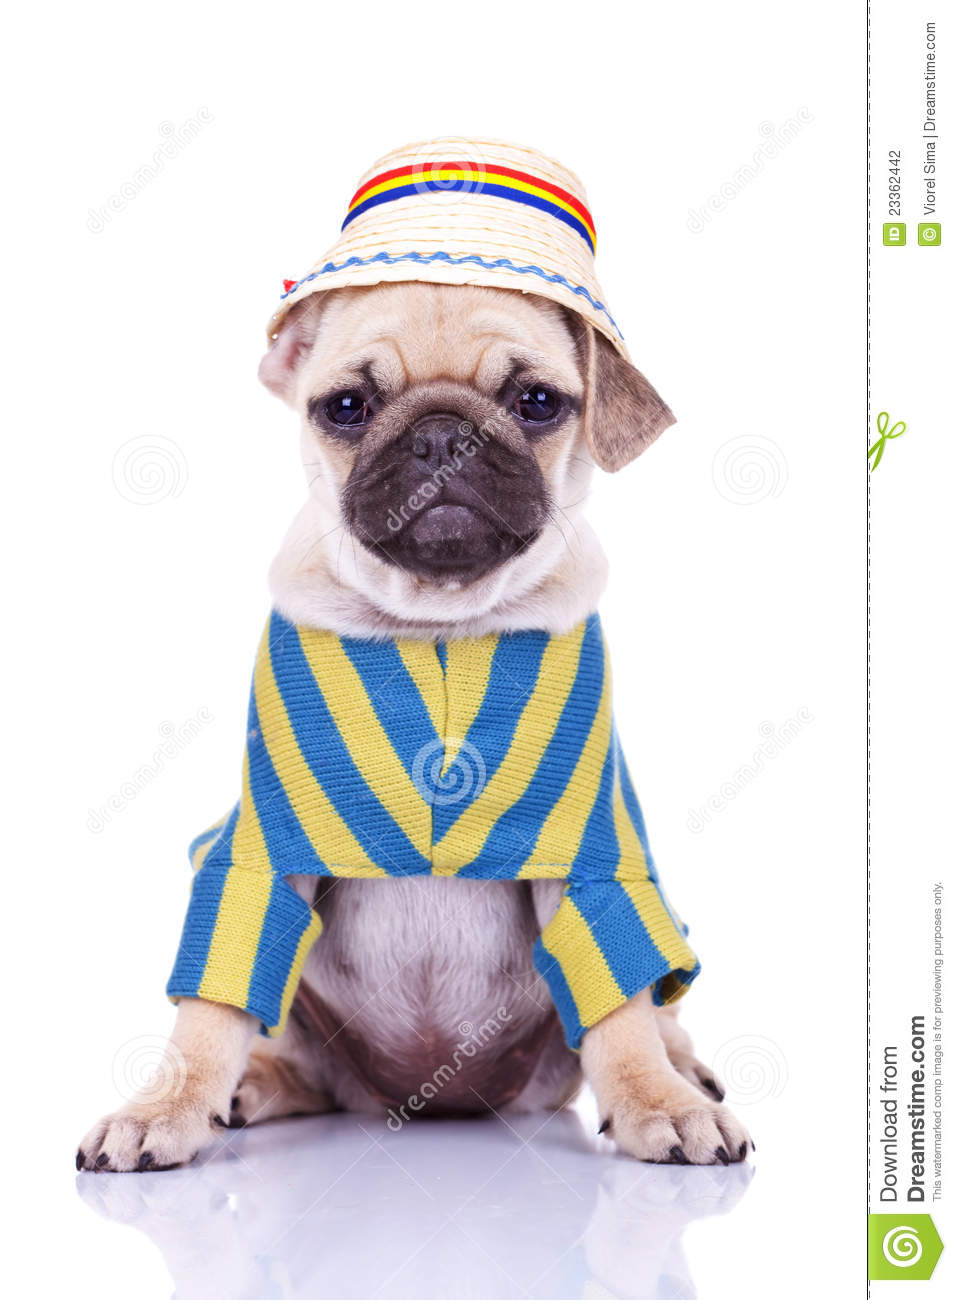 cute pug puppy dog wearing clothes 23362442 Cute Pug Puppies In ...